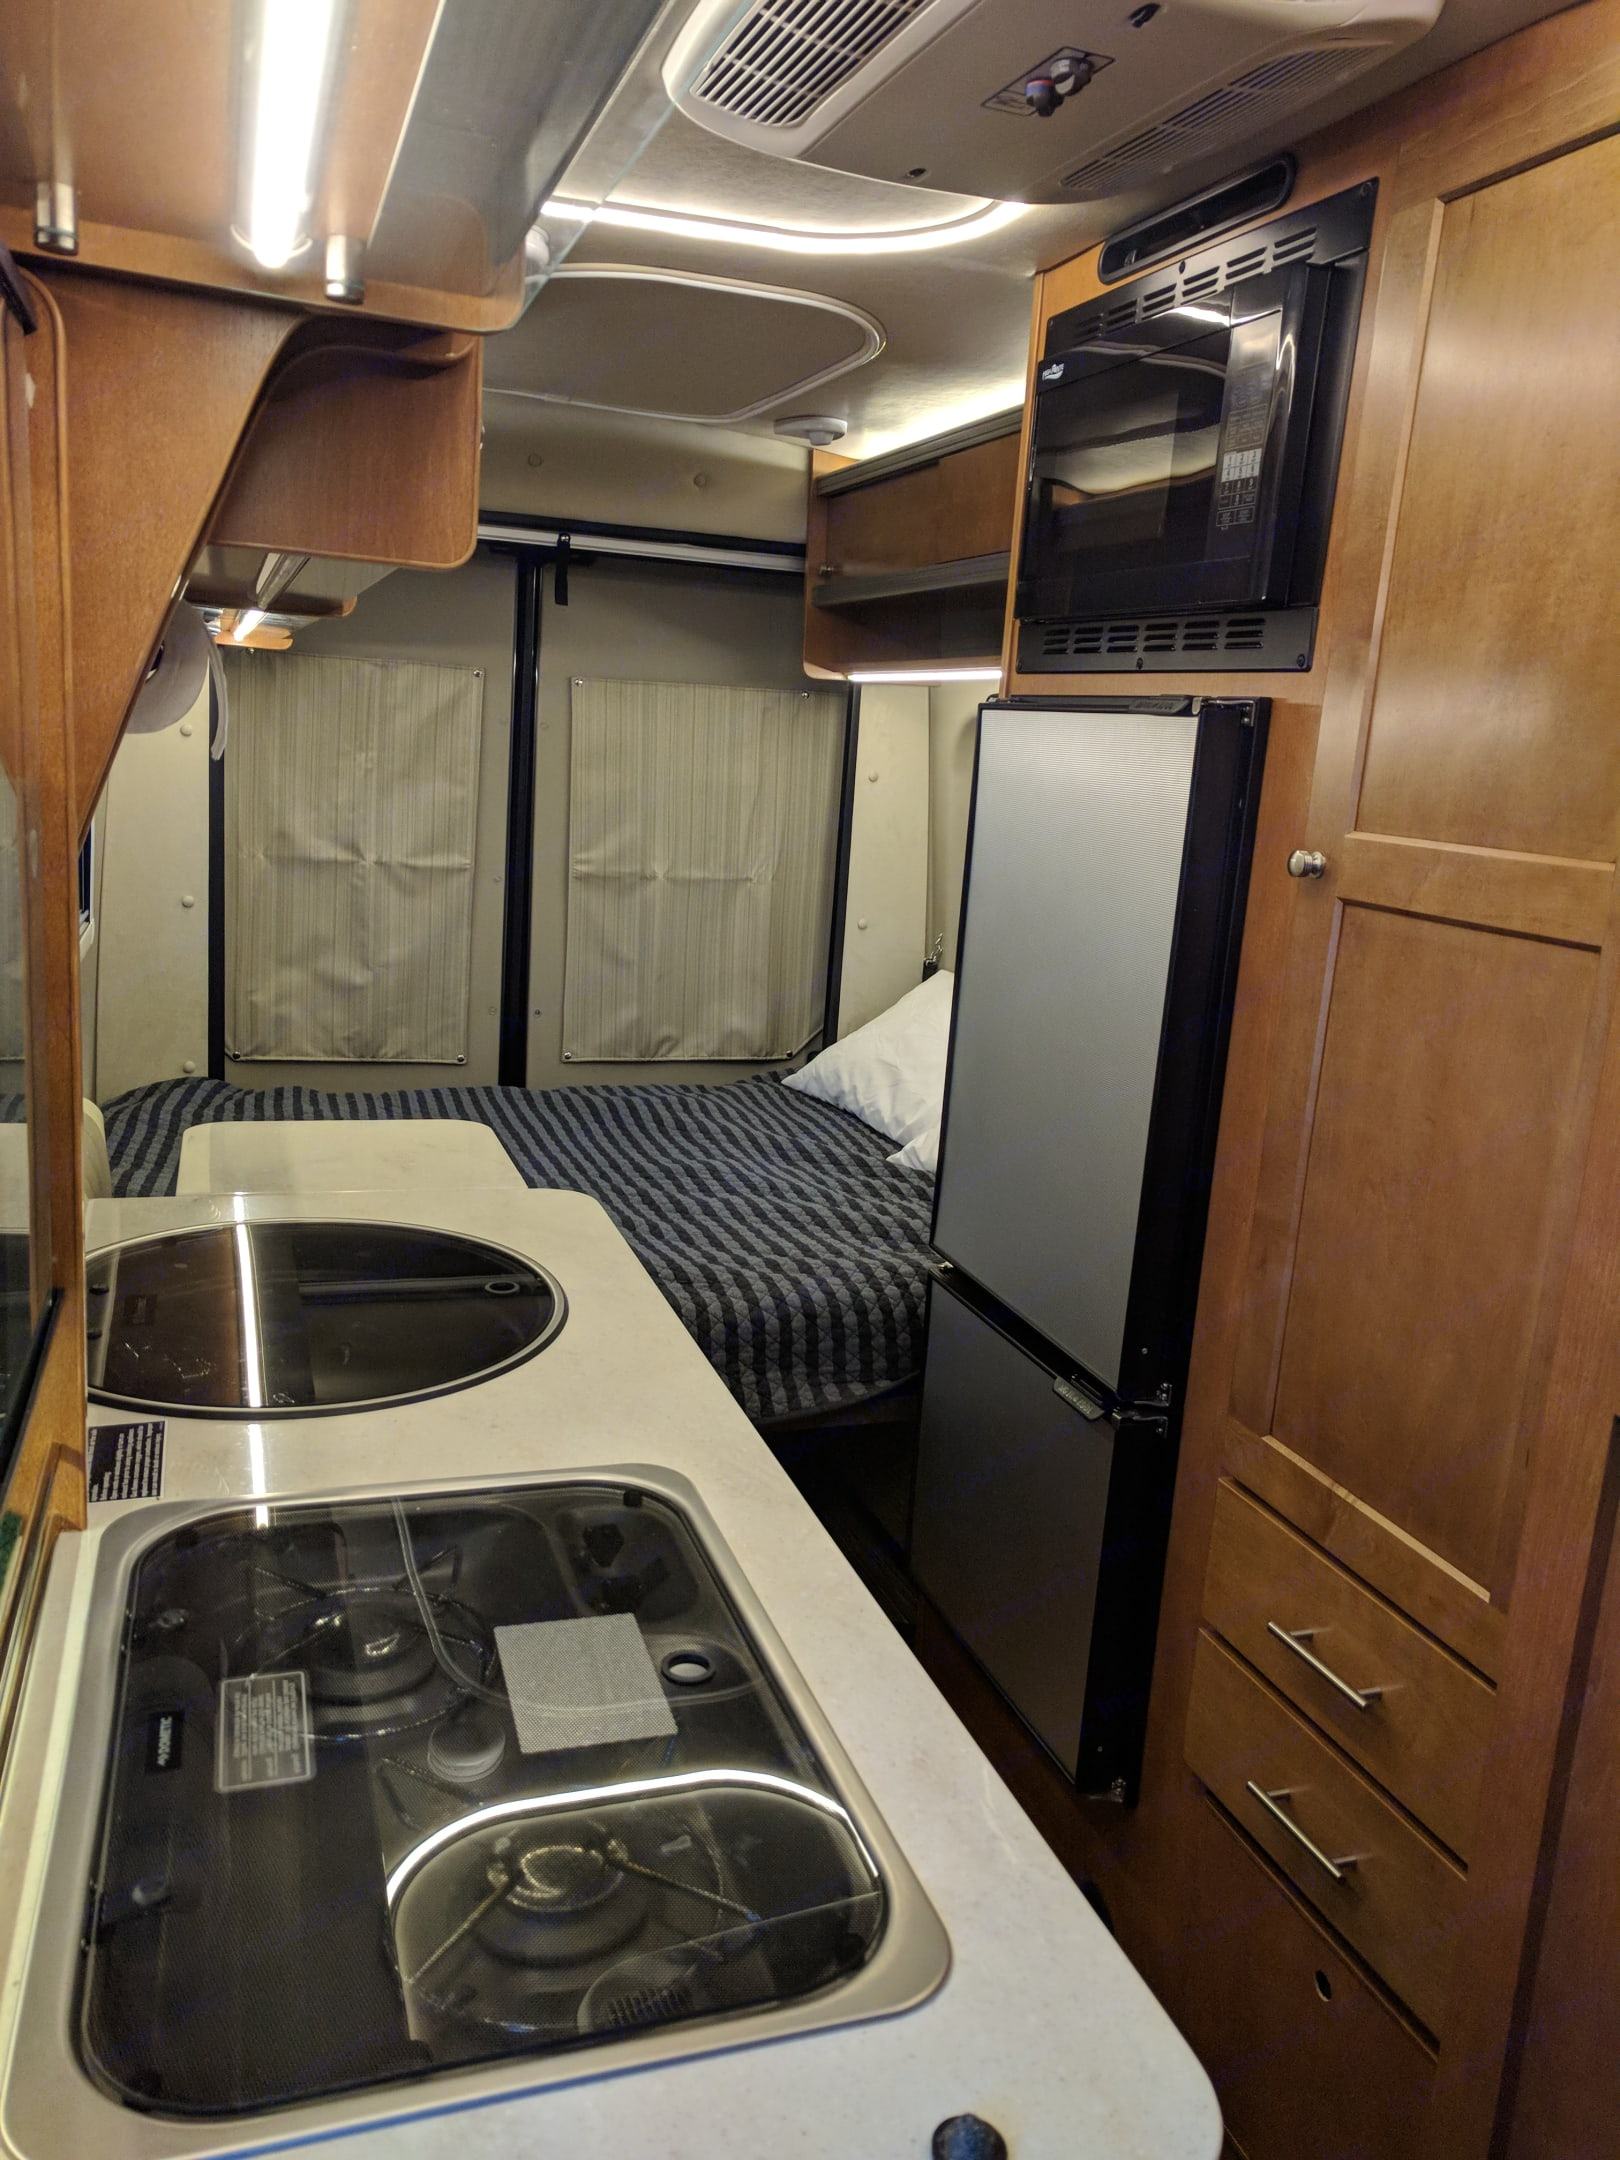 Bed turns into a four person dinette with four legal seat belts for extra passengers. Comfortably sleeps 2 adults. Winnebago Paseo 2018